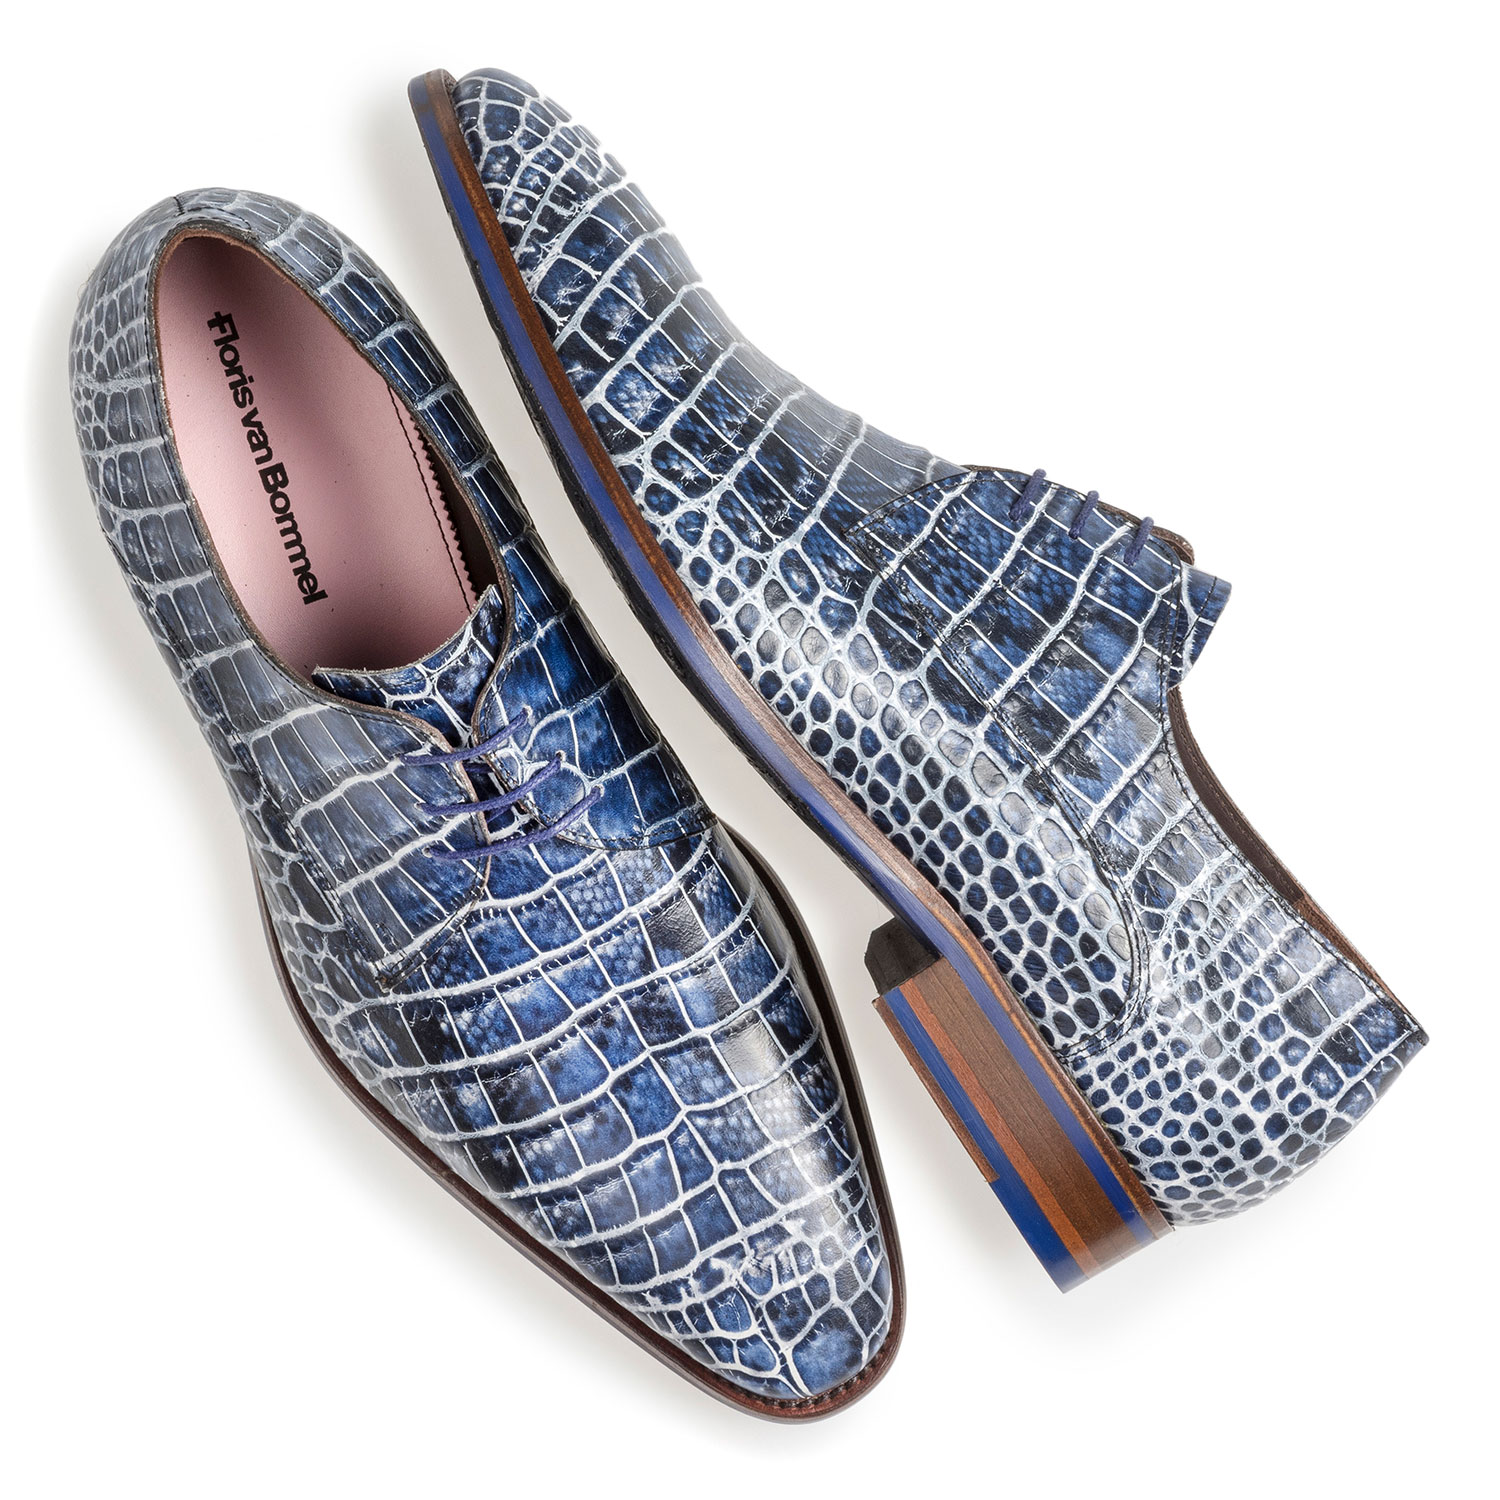 18168/03 - Blue lace shoe with croco print